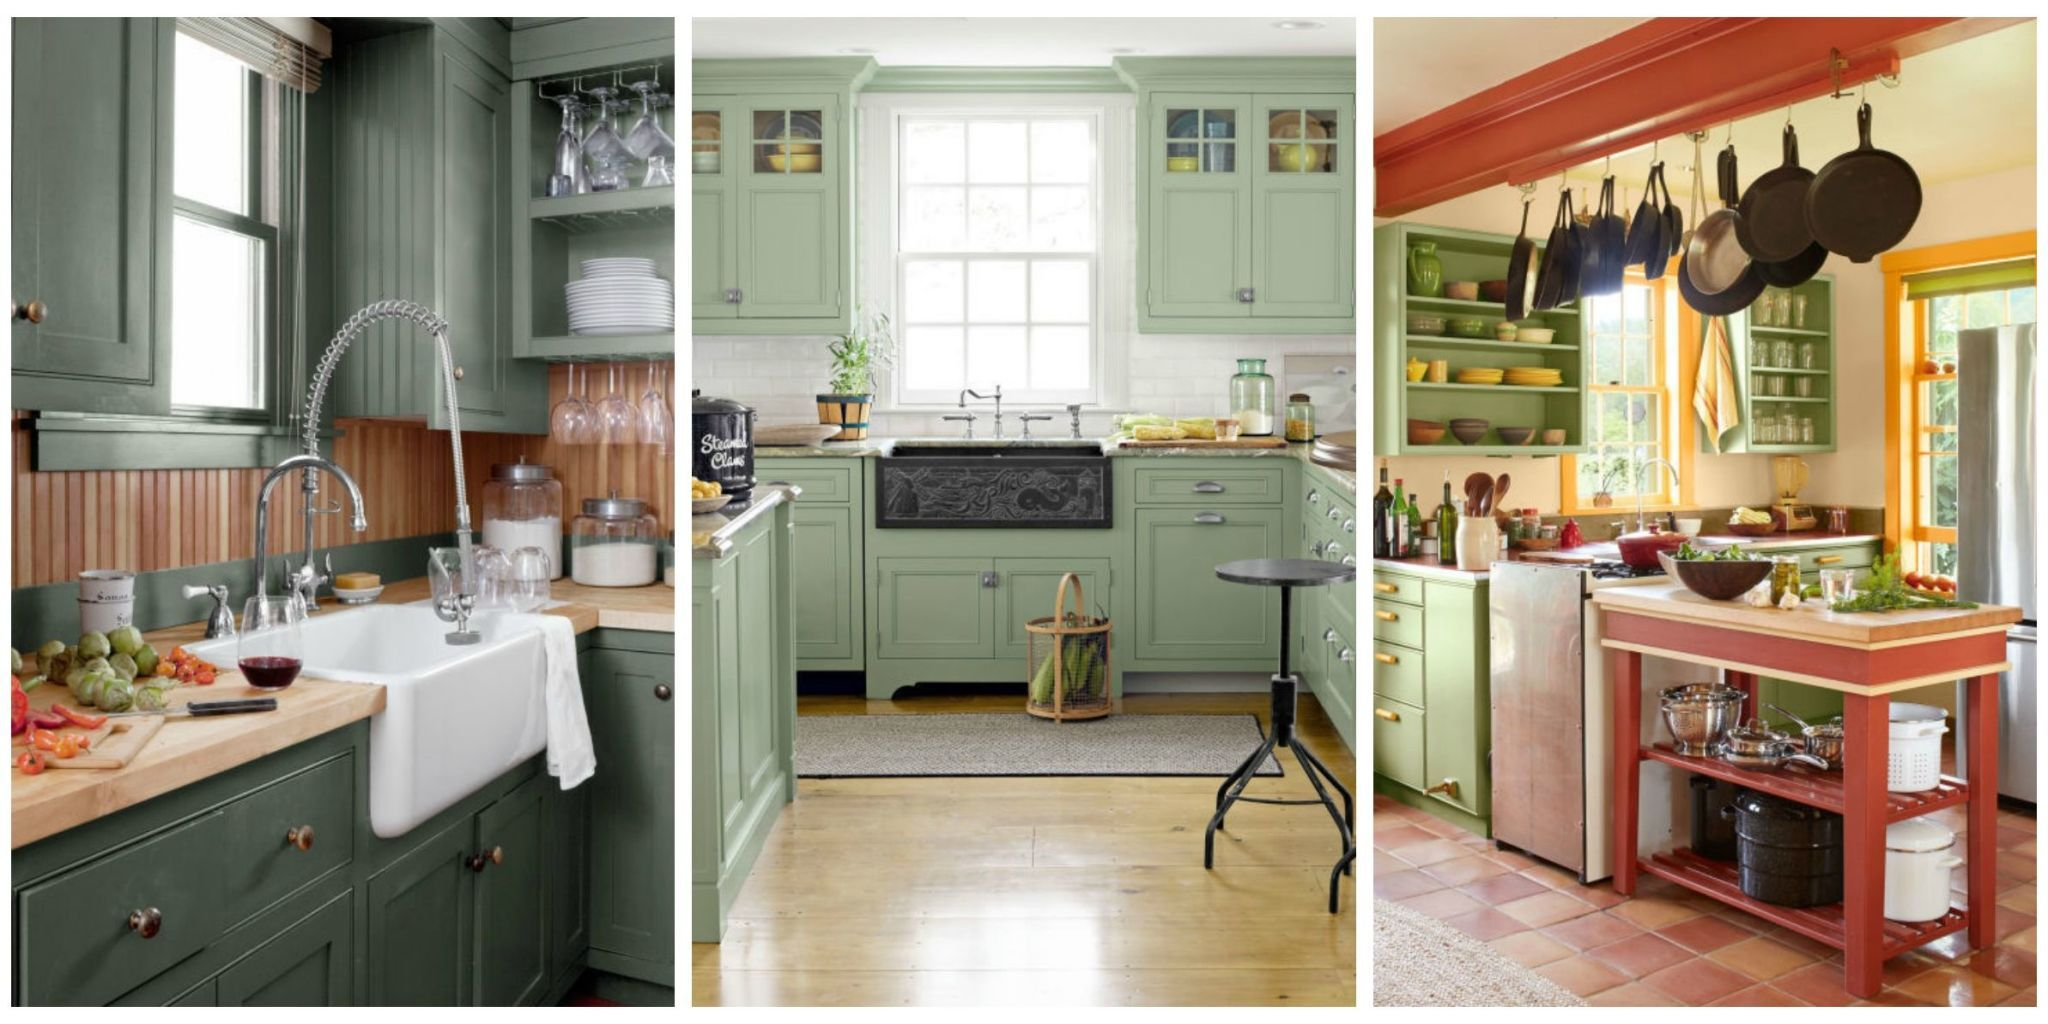 10 Green Kitchen Ideas   Best Green Paint Colors for Kitchens We re here to give you the green light to proceed with your next home  improvement project  With paint options ranging from mint to sage  these  green kitchen